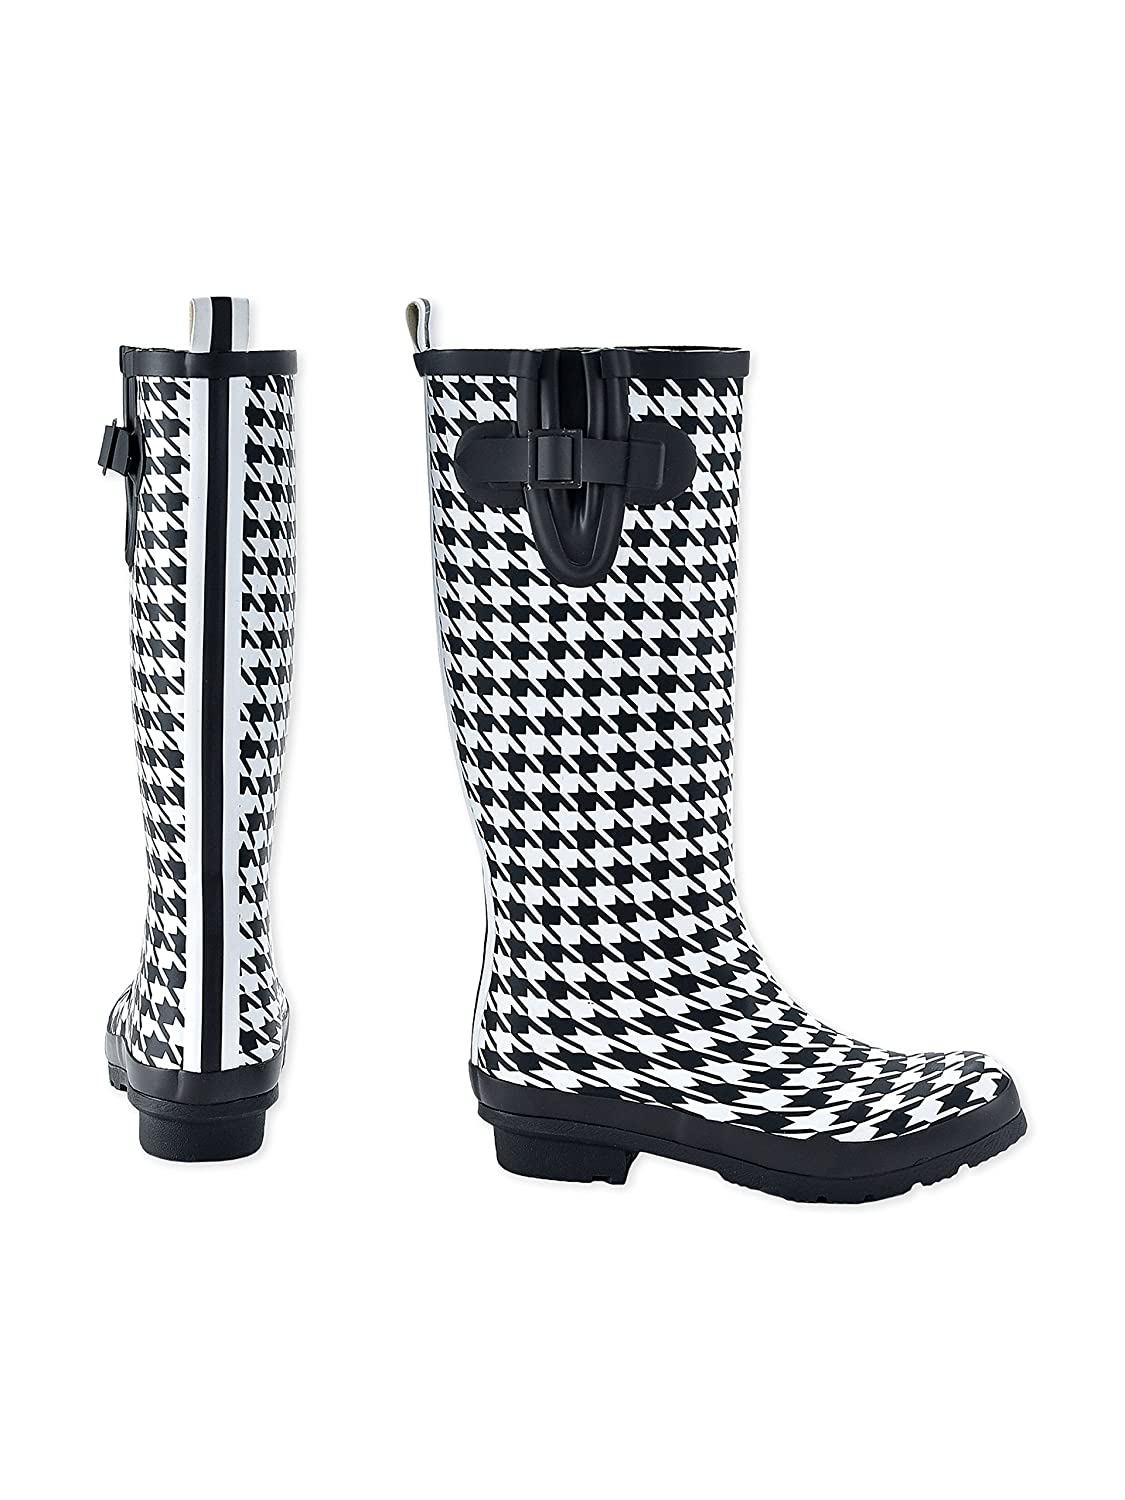 Charlie Paige Ladies Leather Tread Fashion Rubber Rain Boots B075ZVR8Z3 8 B(M) US|Black White Houndstooth